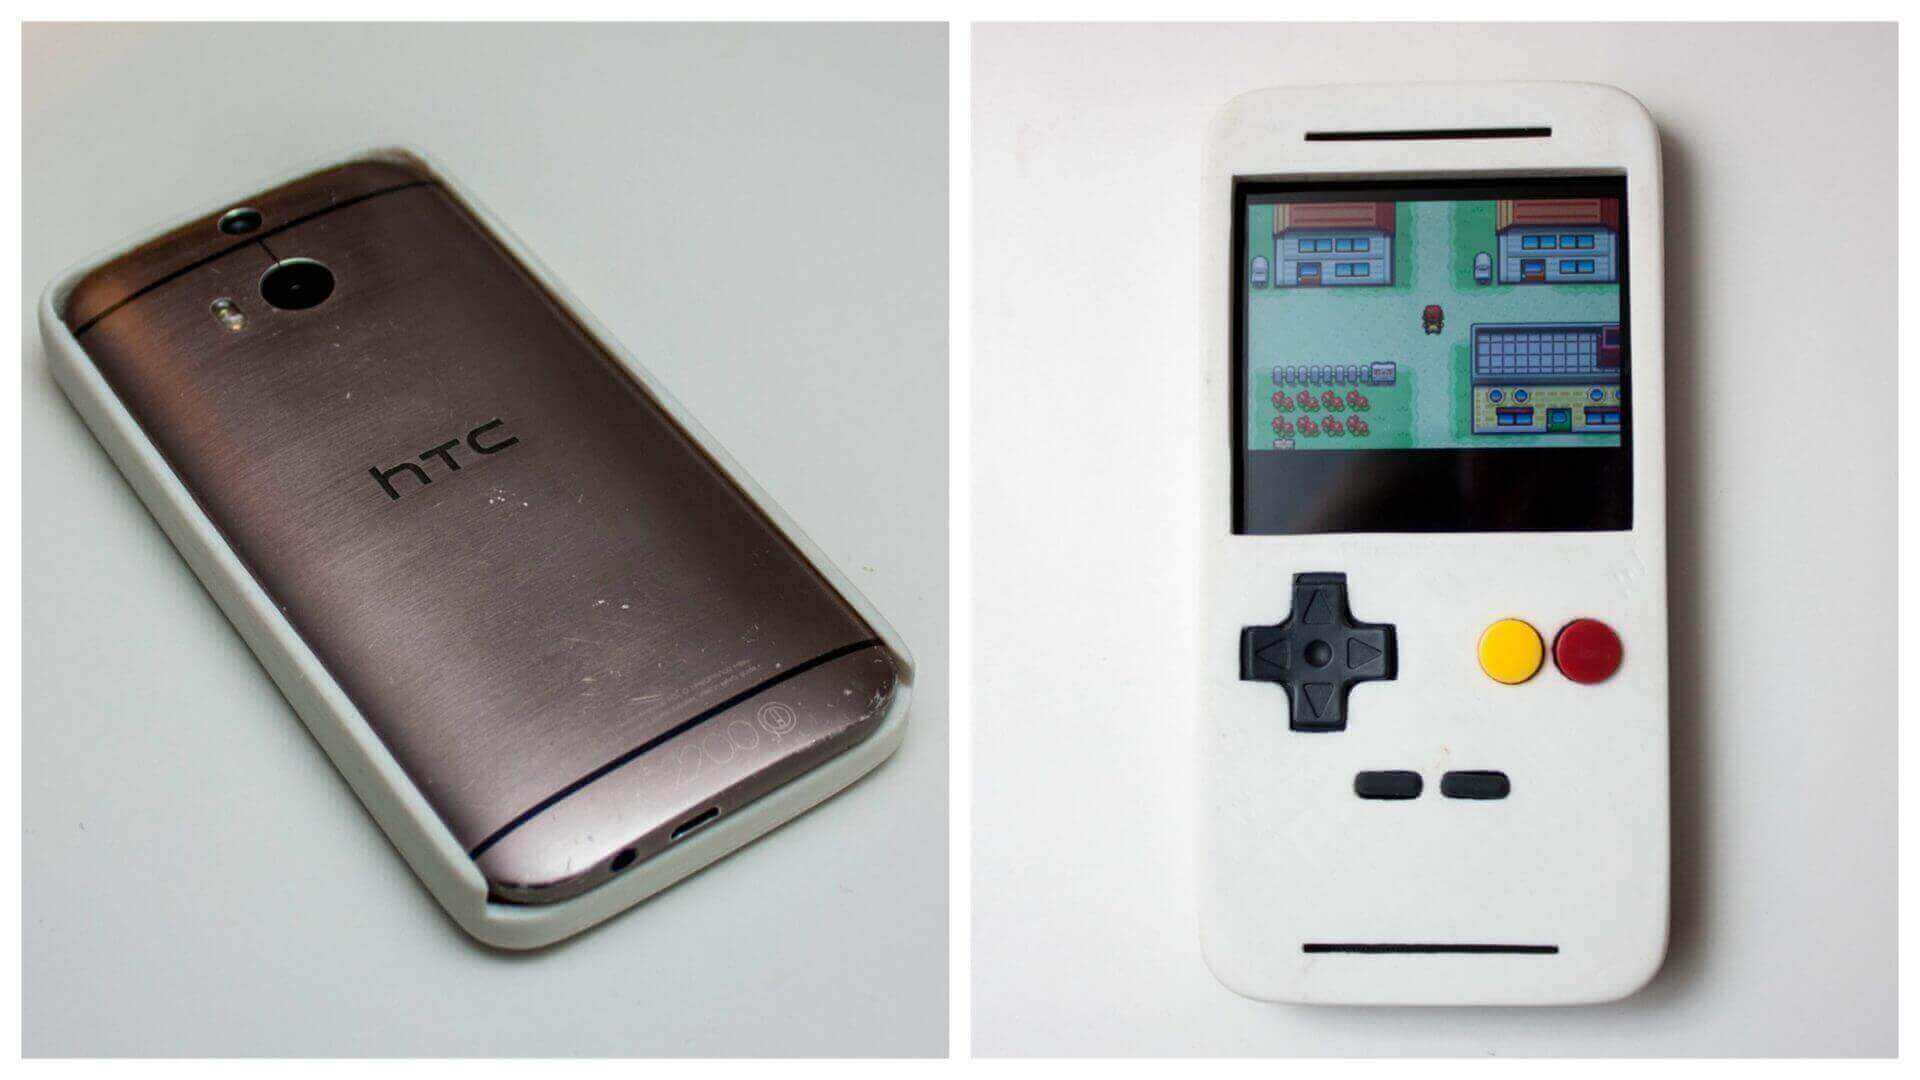 3D Printed EmuCase: Smartphone Turned Into a Game Boy Classic | All3DP